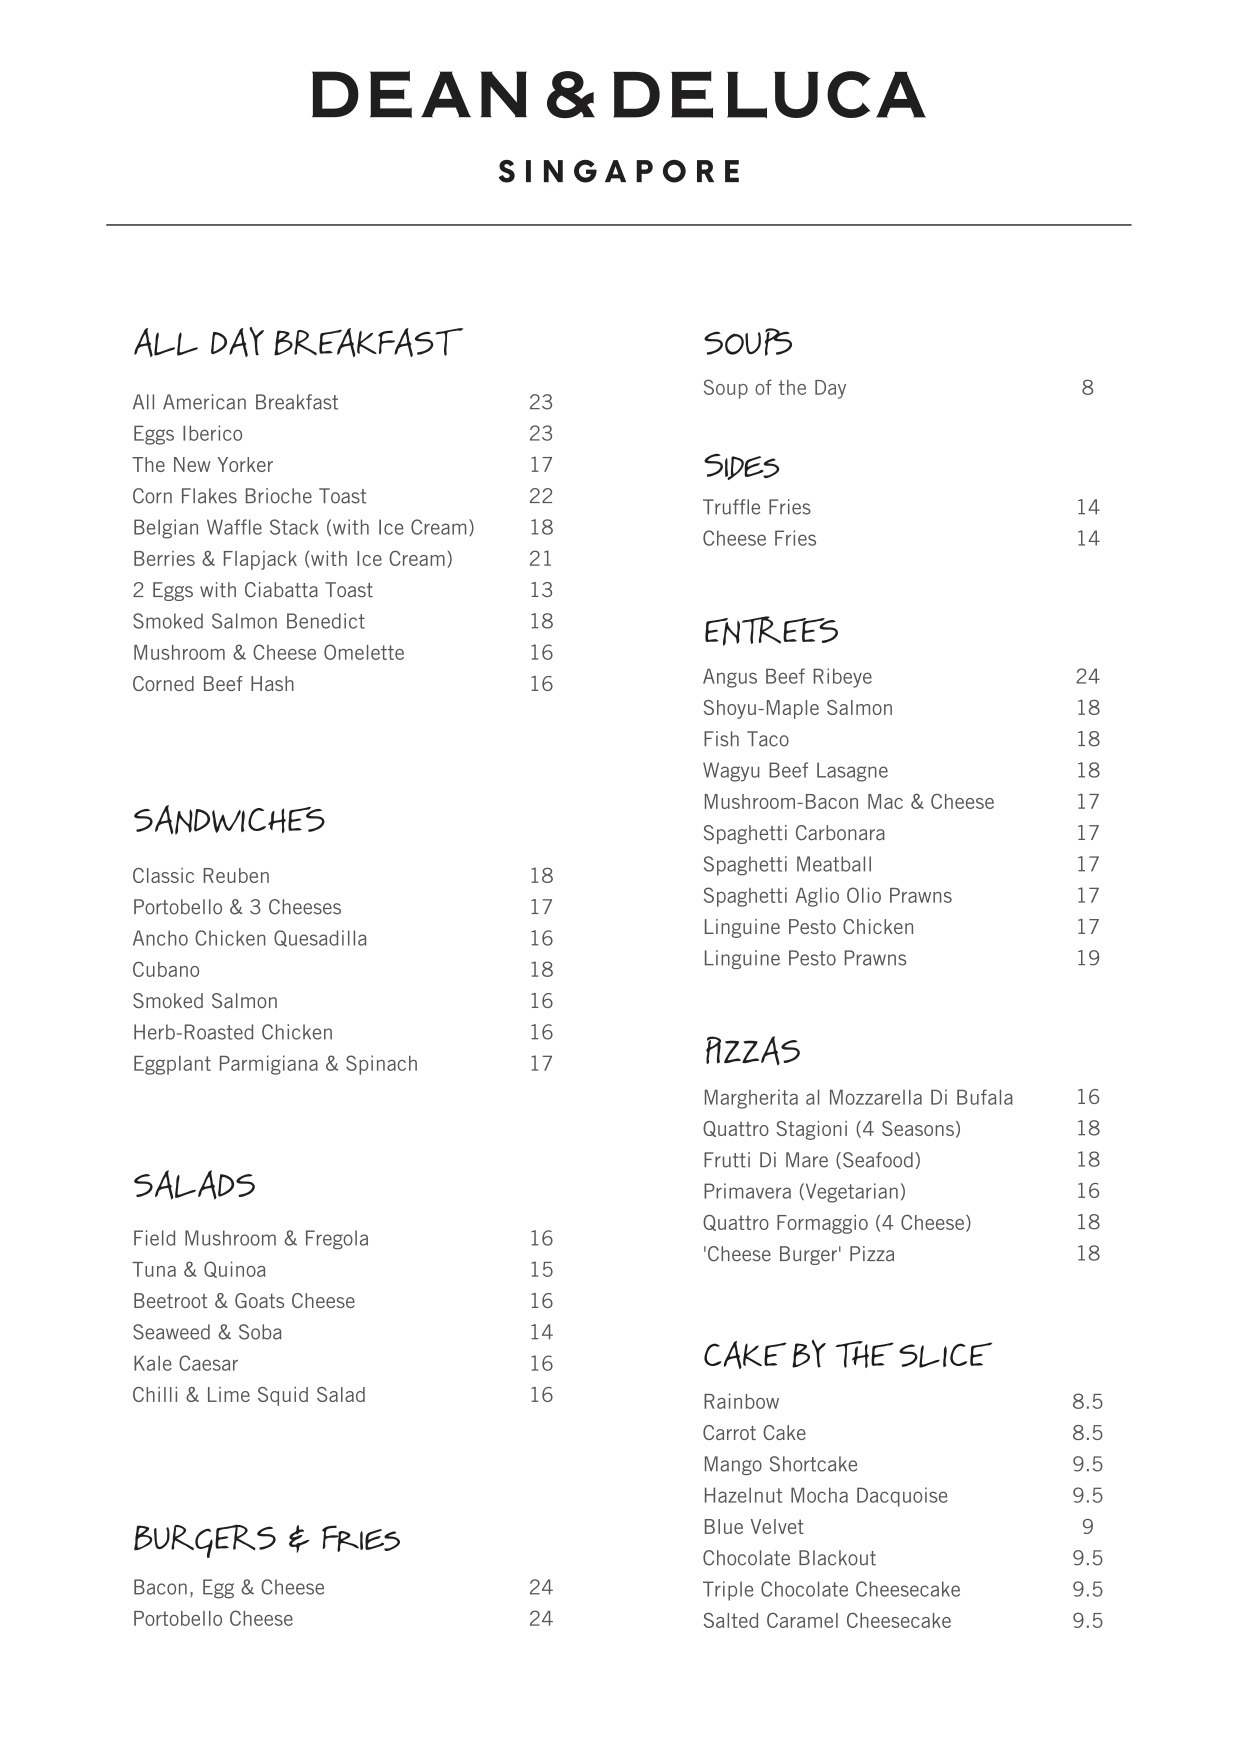 Dean & Deluca @ HillV2 - Menu Pg1 - TREAT